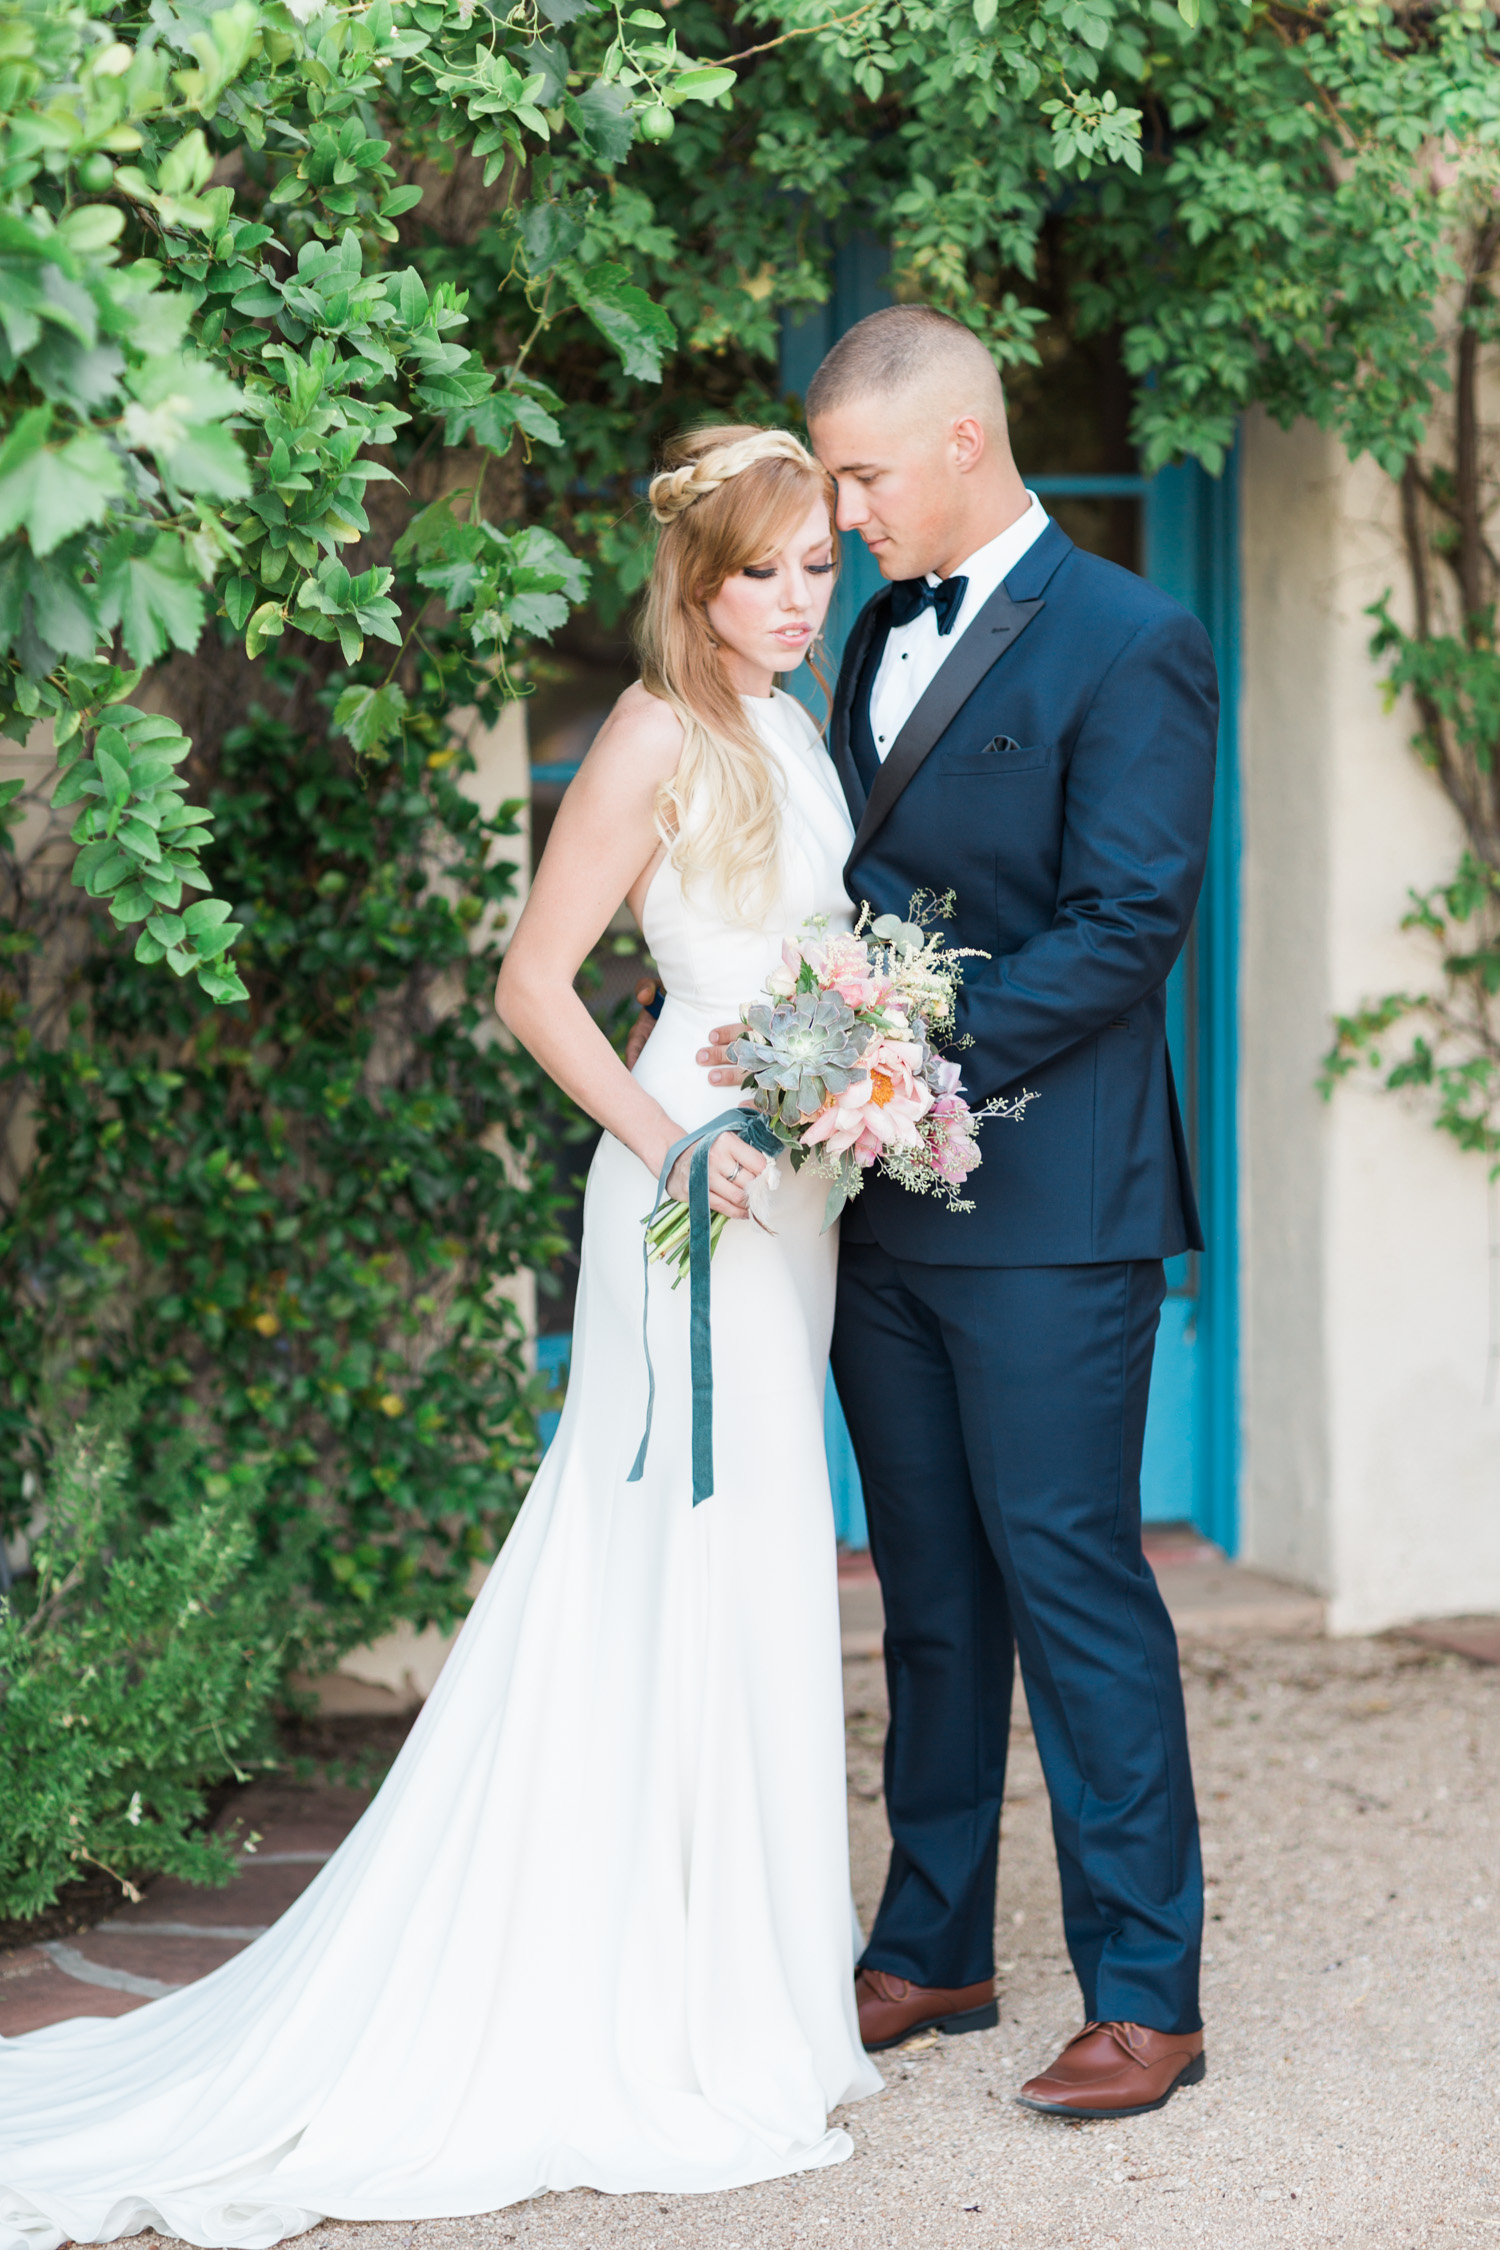 Couple embracing at Tohono Chul wedding in Tucson, Arizona